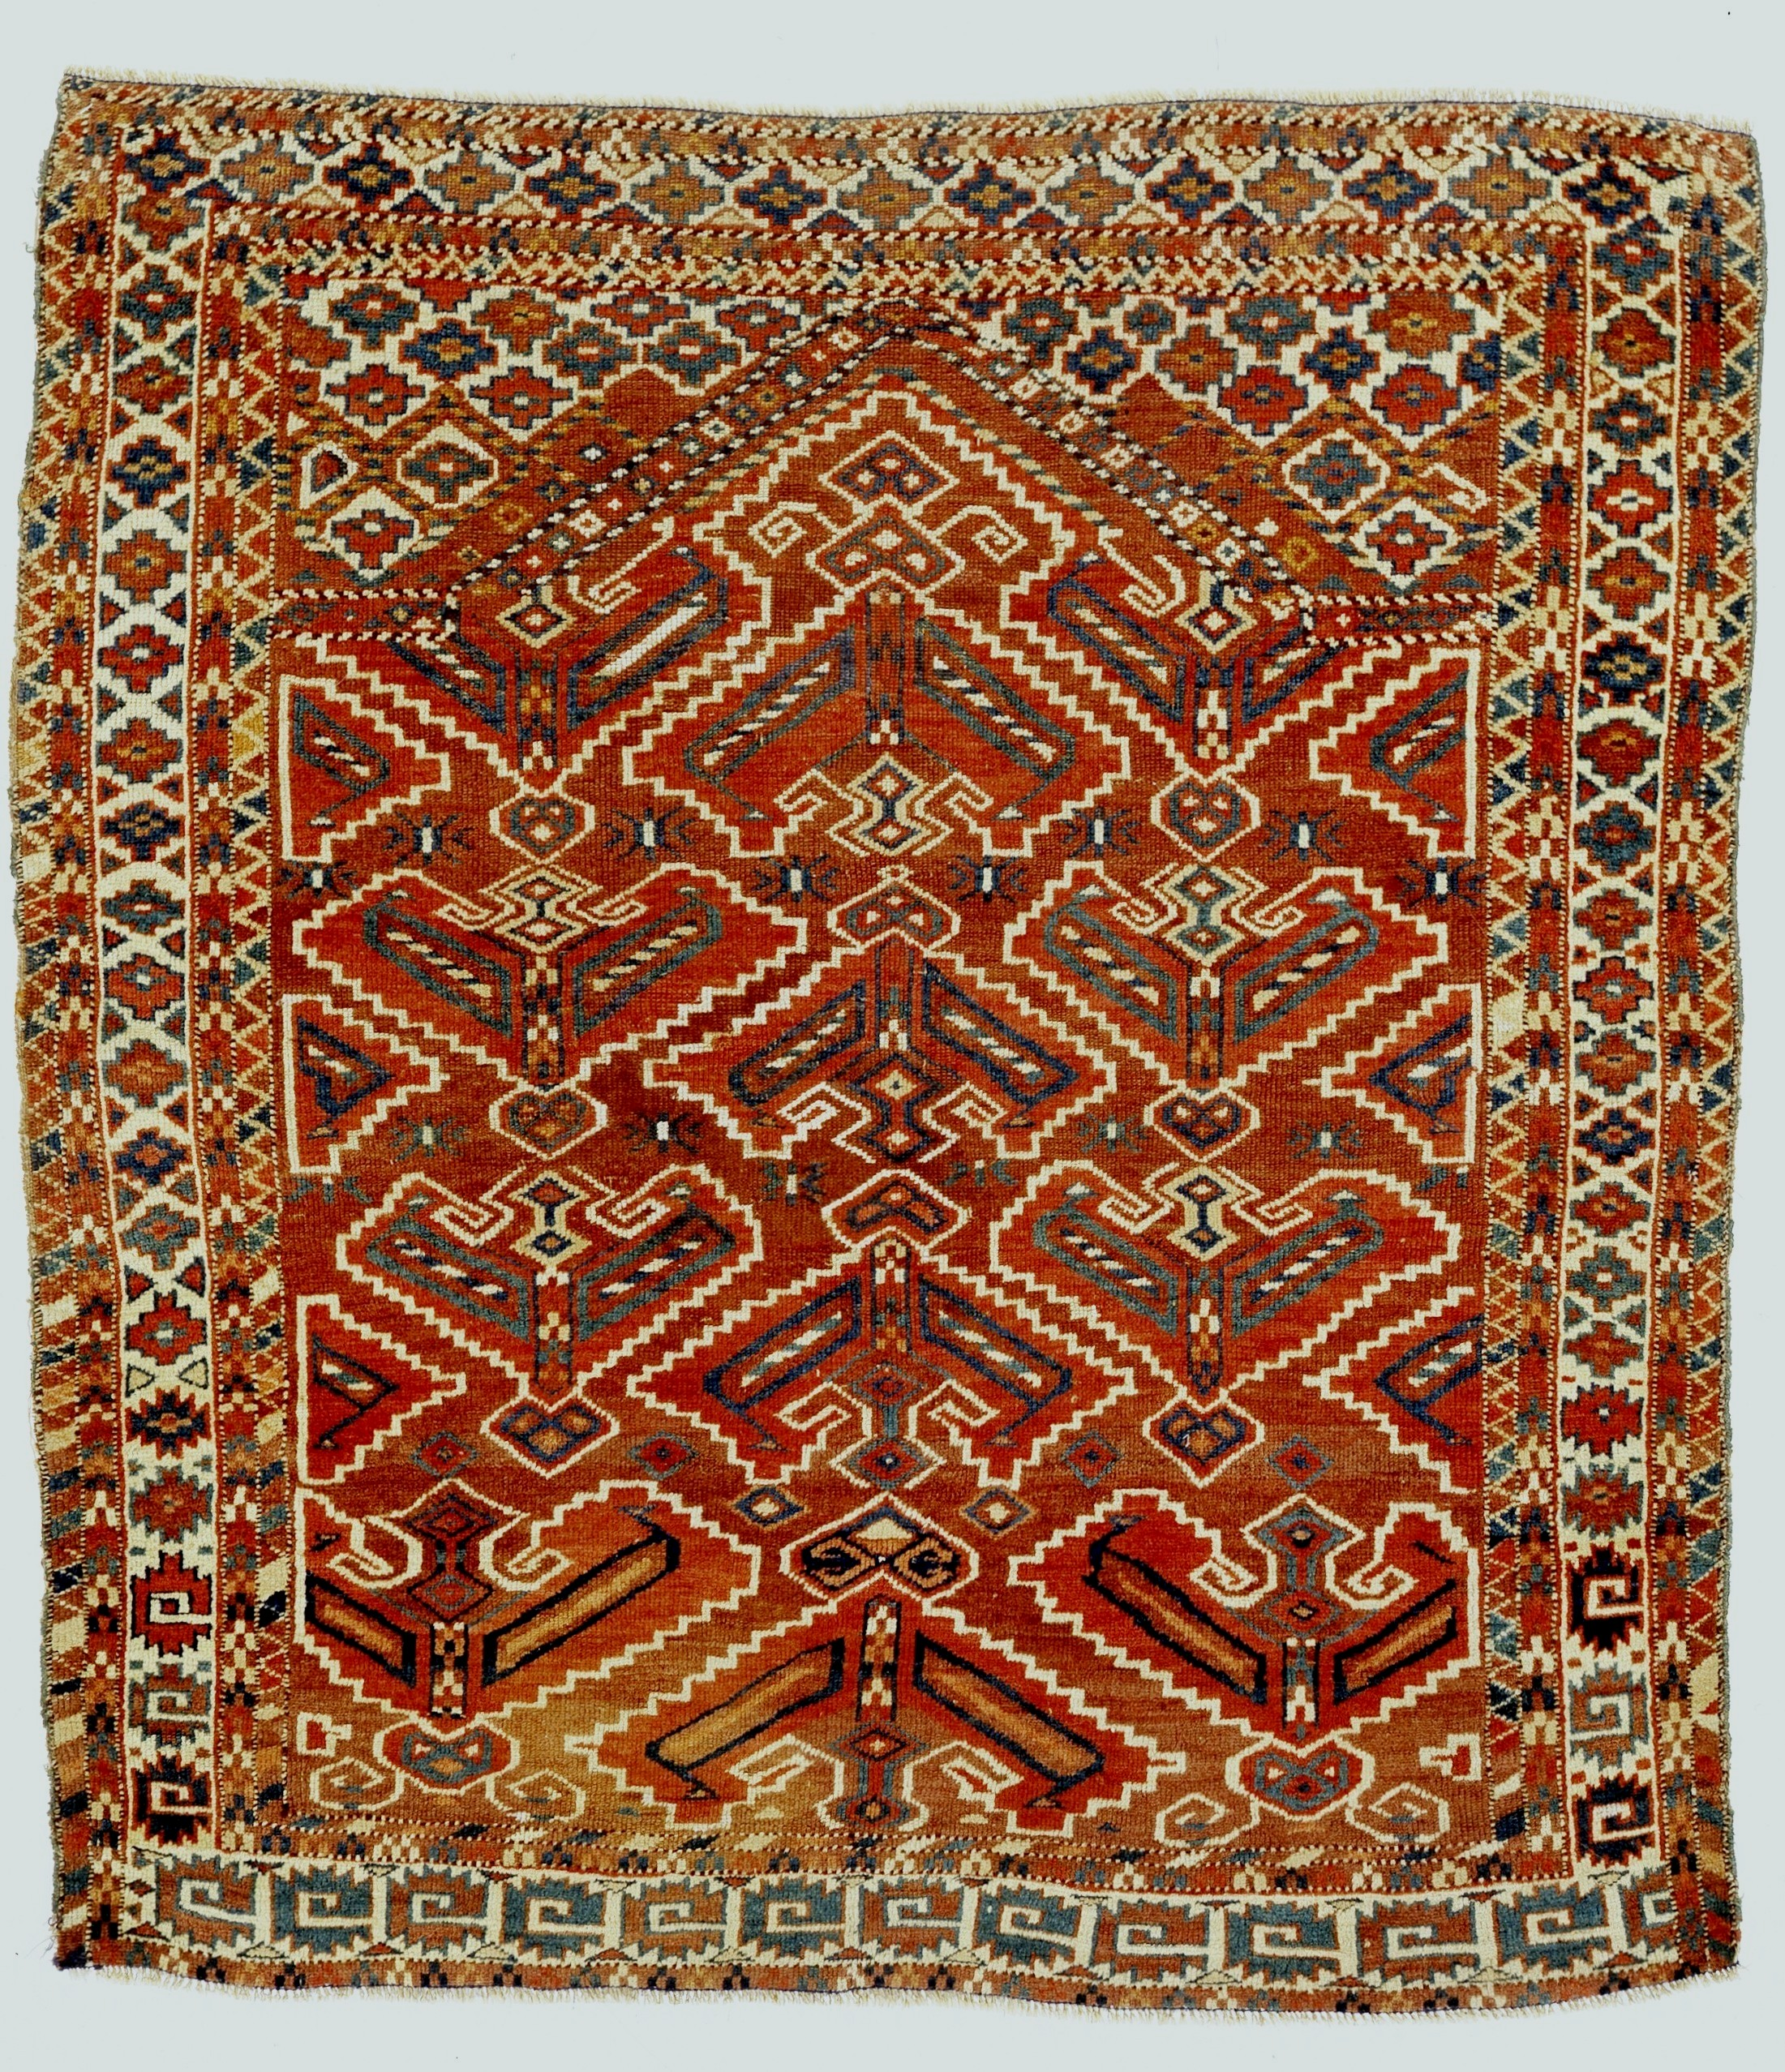 Prayer Rug Types: Central Asia 2